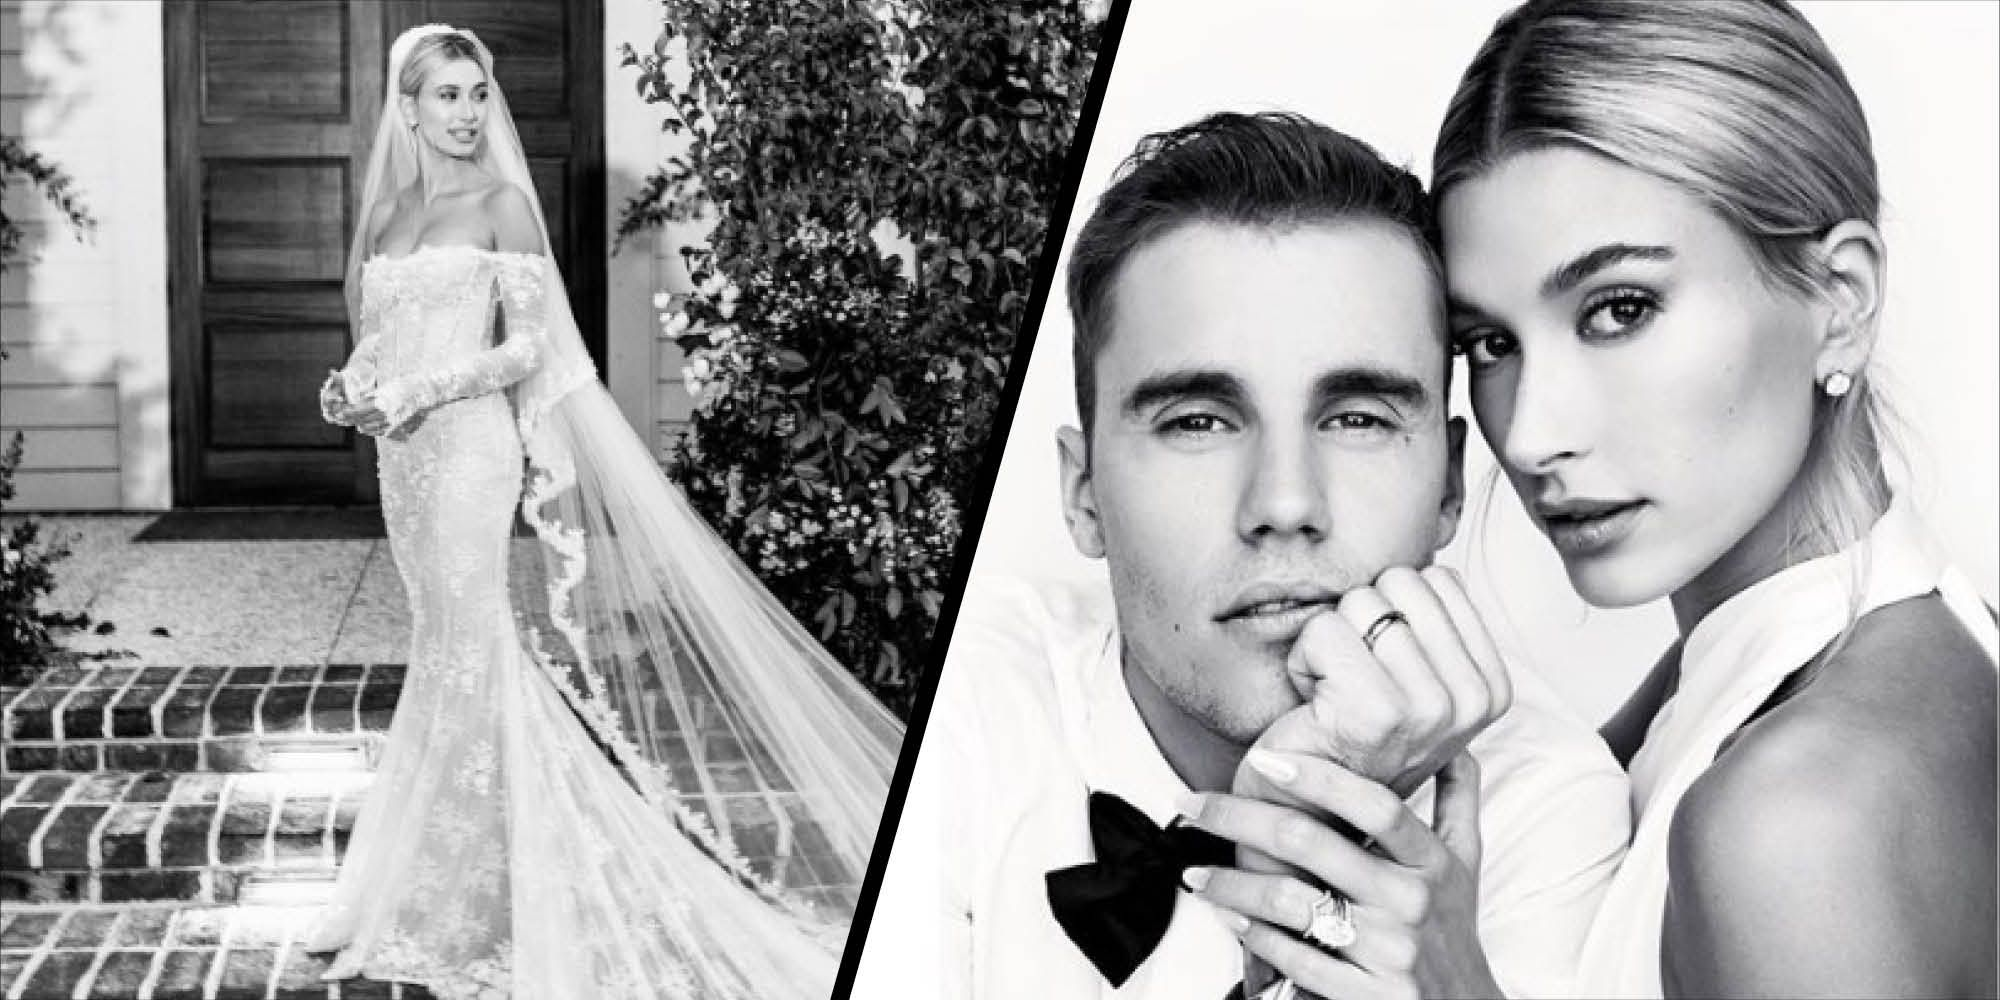 Hailey Bieber gives us a close up look at her wedding dress